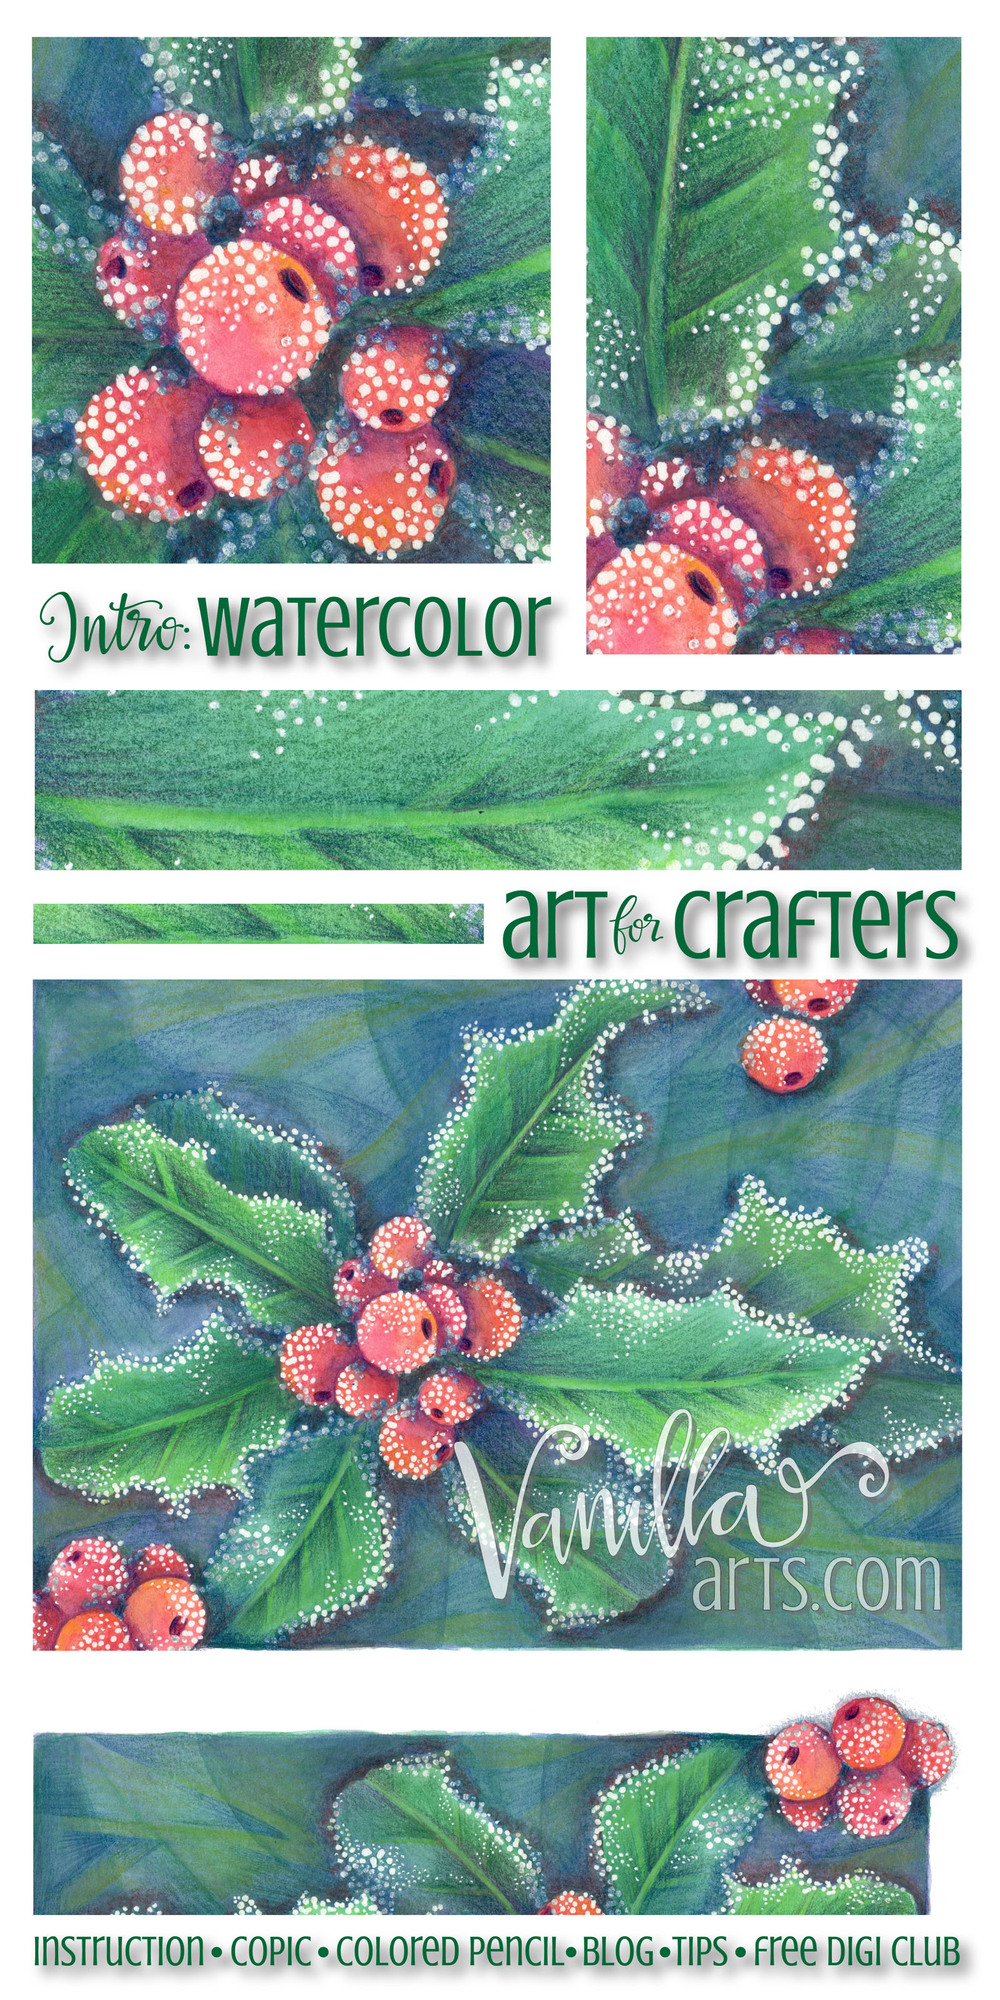 Intro to watercolor lesson using watercolor pencils | VanillaArts.com